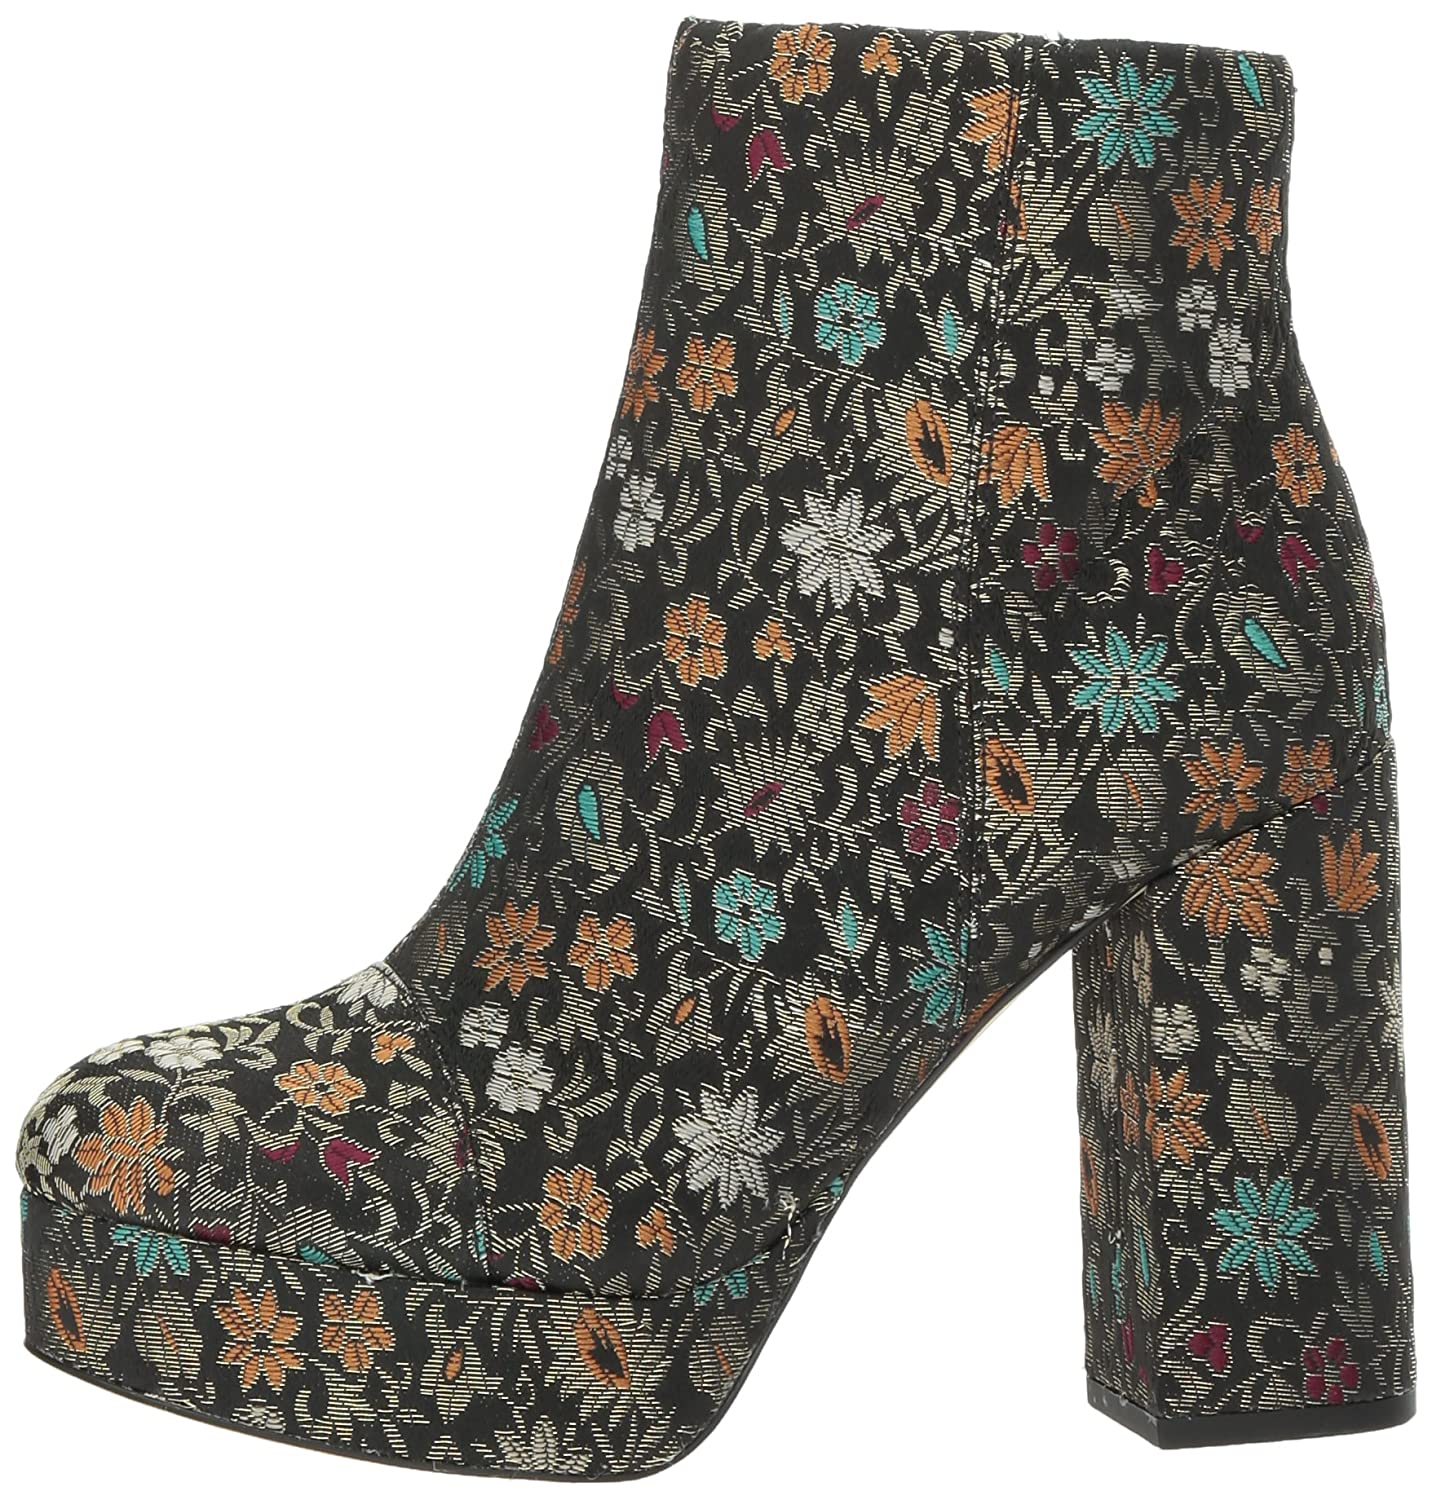 d4ddffa6db665c Sam Edelman Women s Azra Fashion Boot  Buy Online at Low Prices in India -  Amazon.in